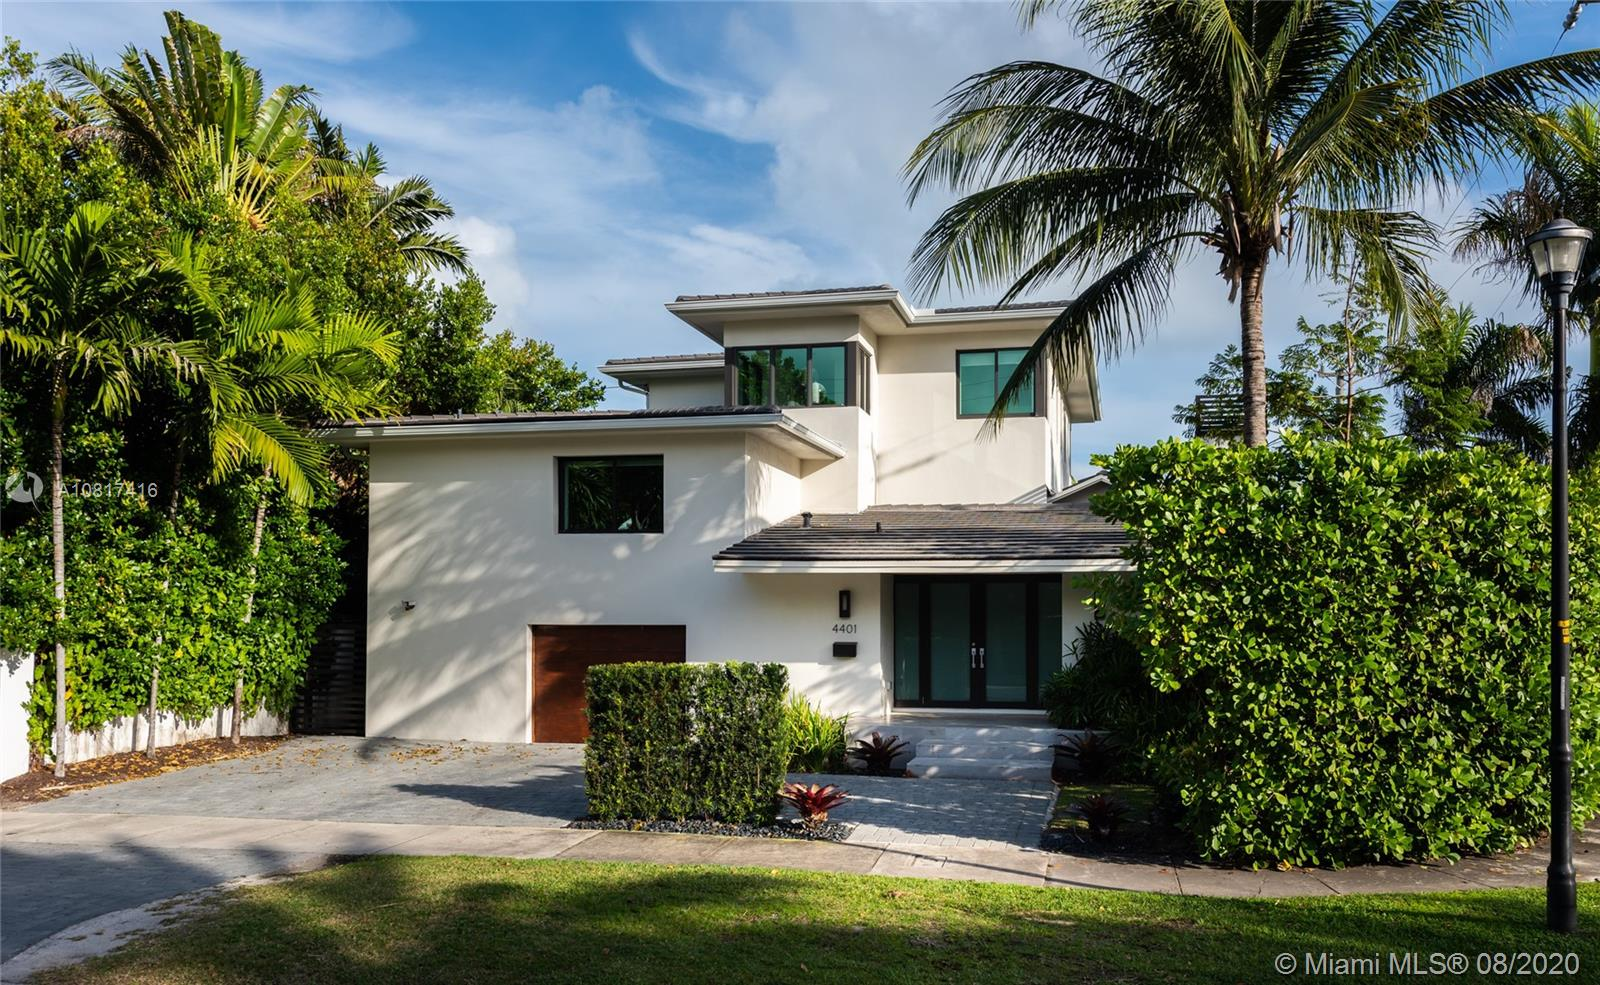 4401 N Bay Rd  For Sale A10817416, FL